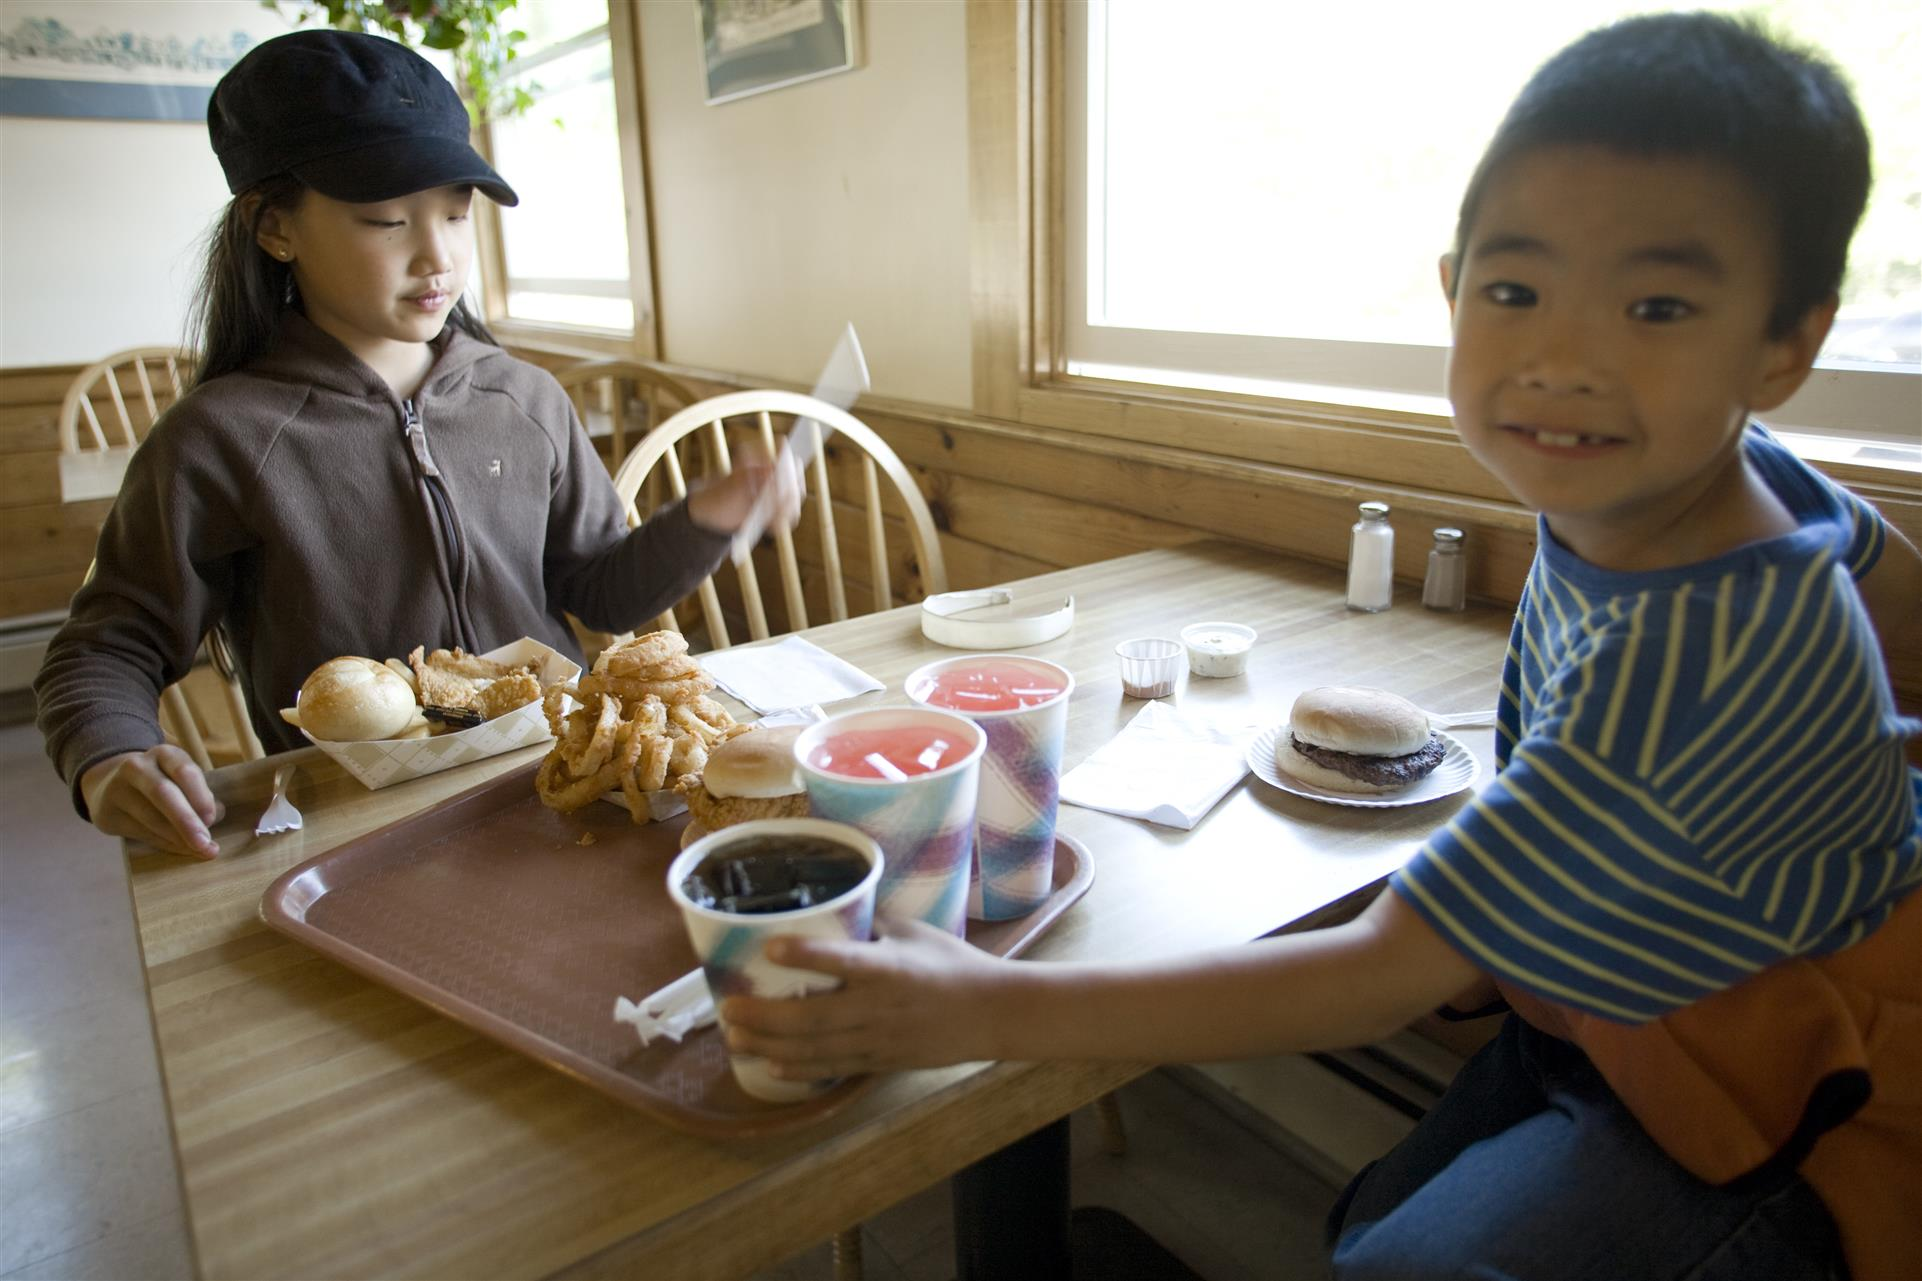 two children sitting at a table